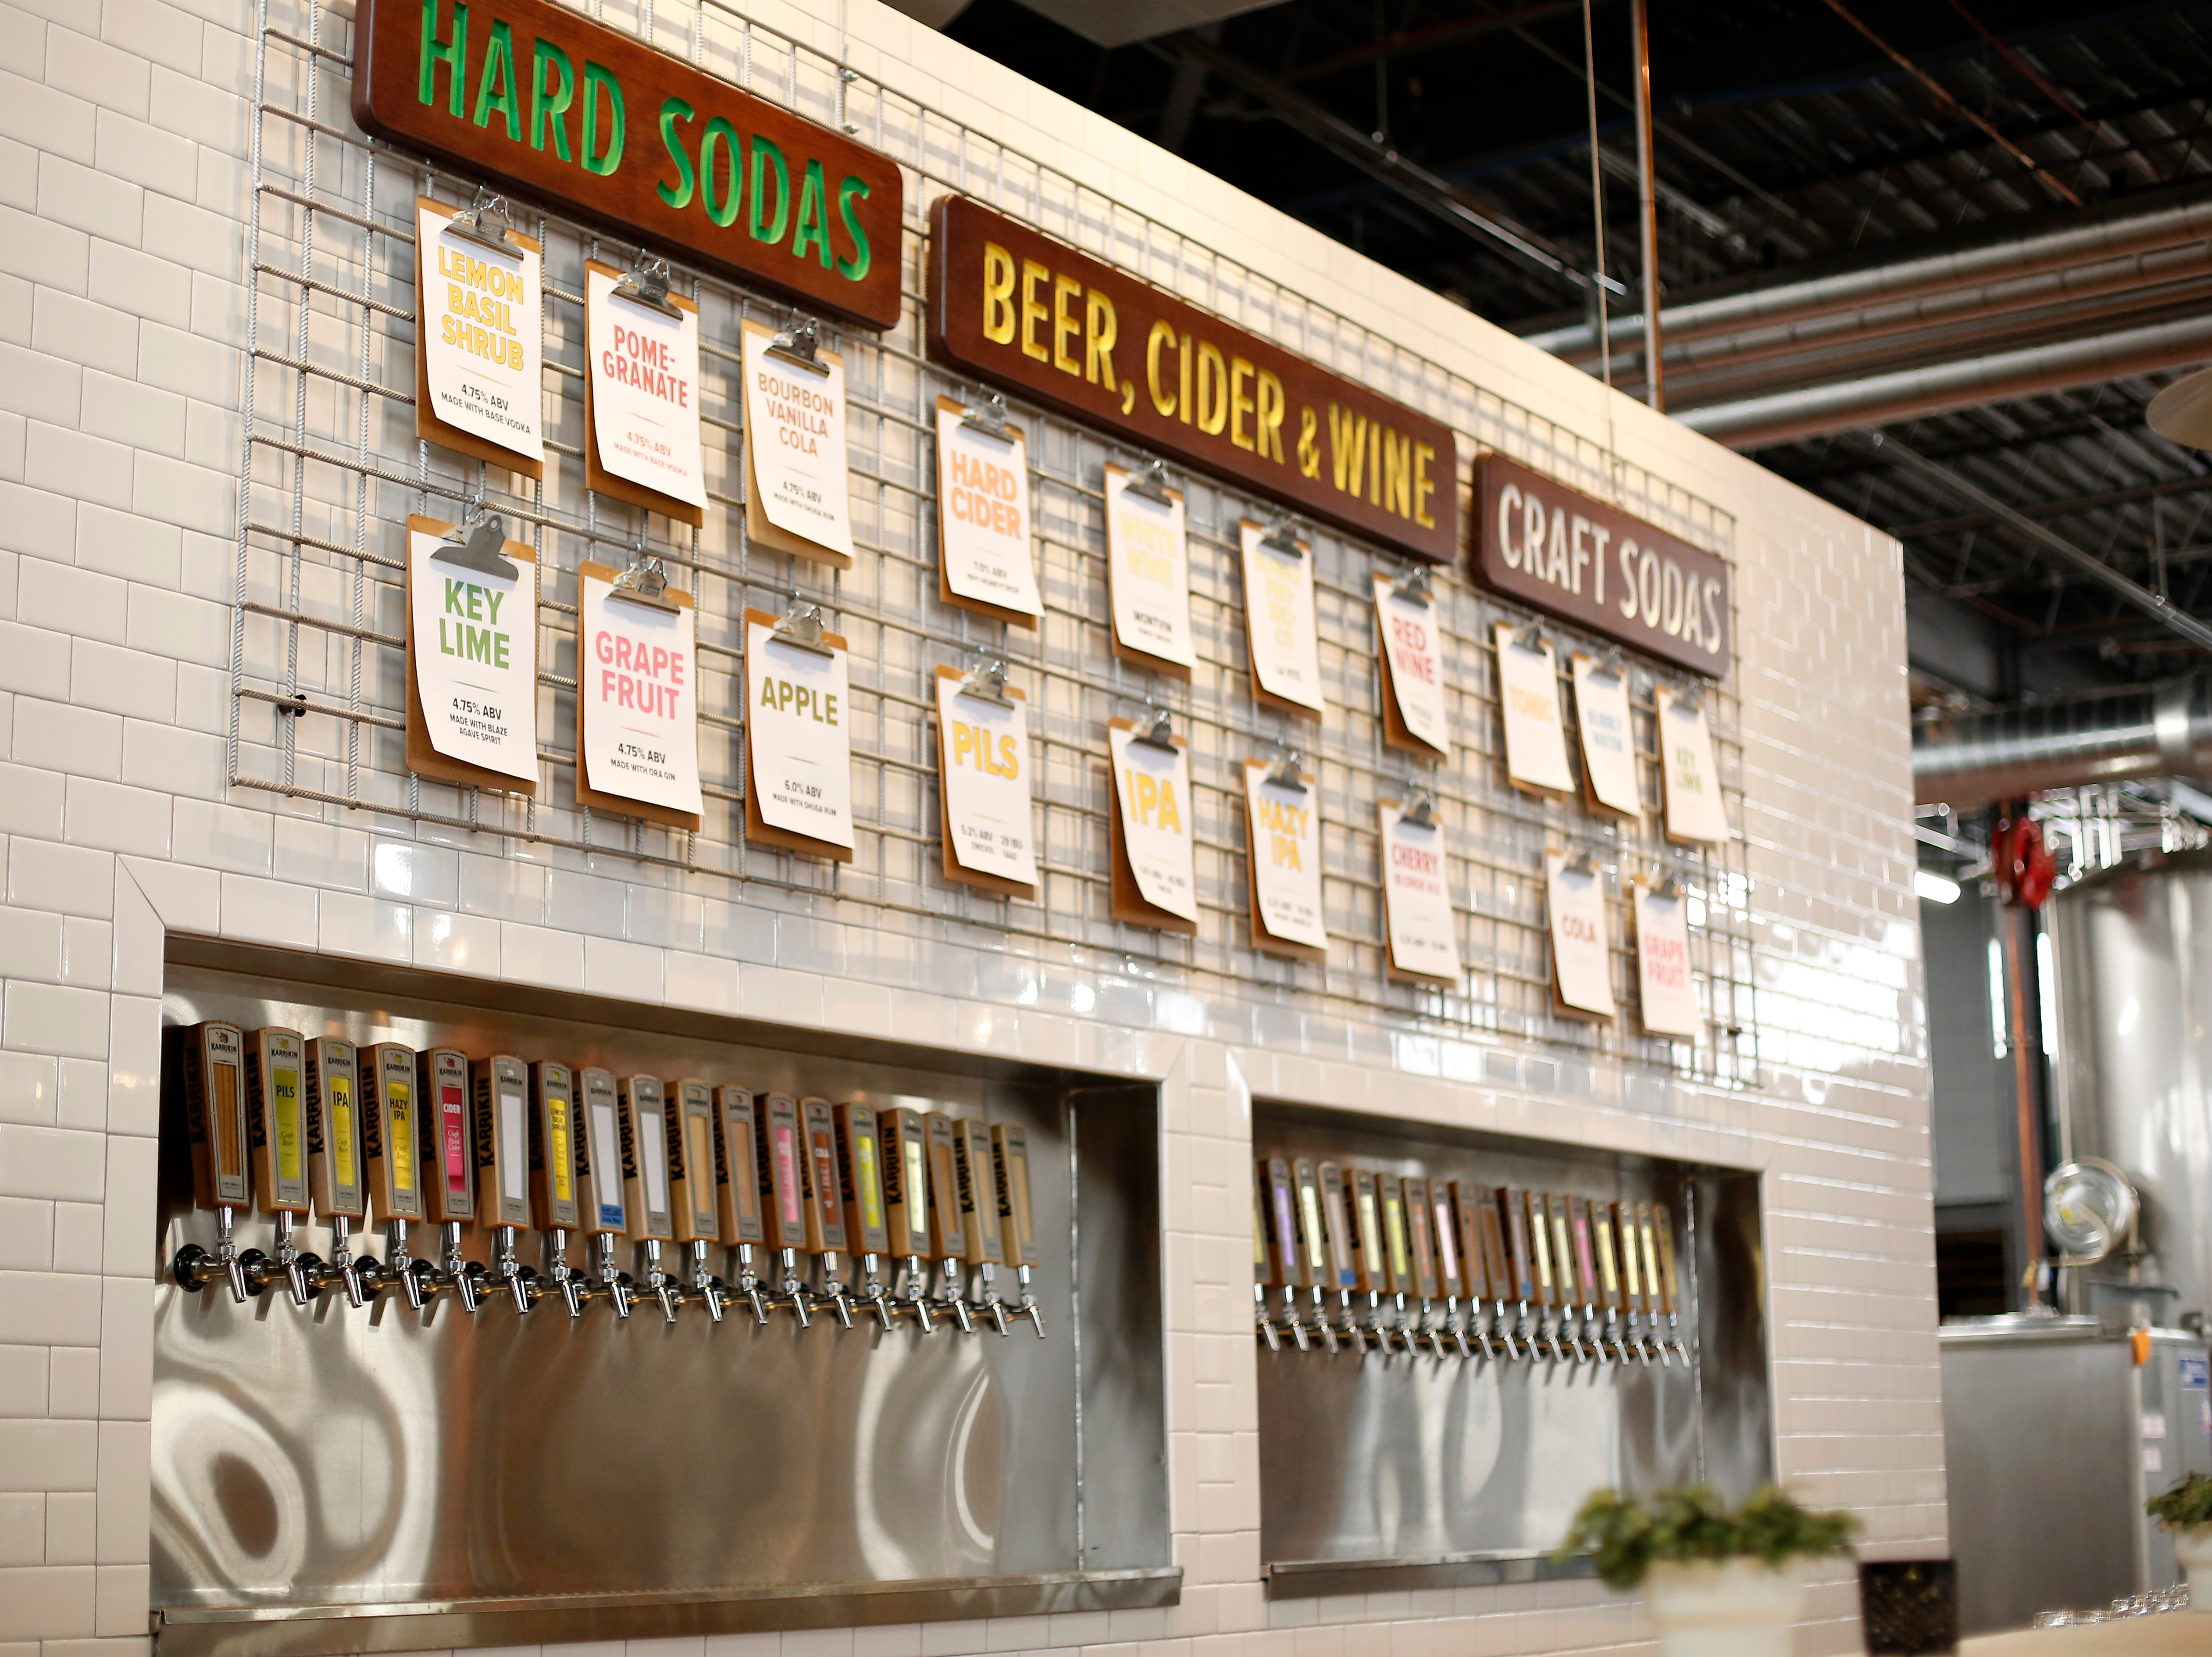 The main set of taps with hard soda, beer, ciders, wines and craft sodas on tap at Karrikin Spirits Co. in the Fairfax neighborhood of Cincinnati on Thursday, Jan. 31, 2019.